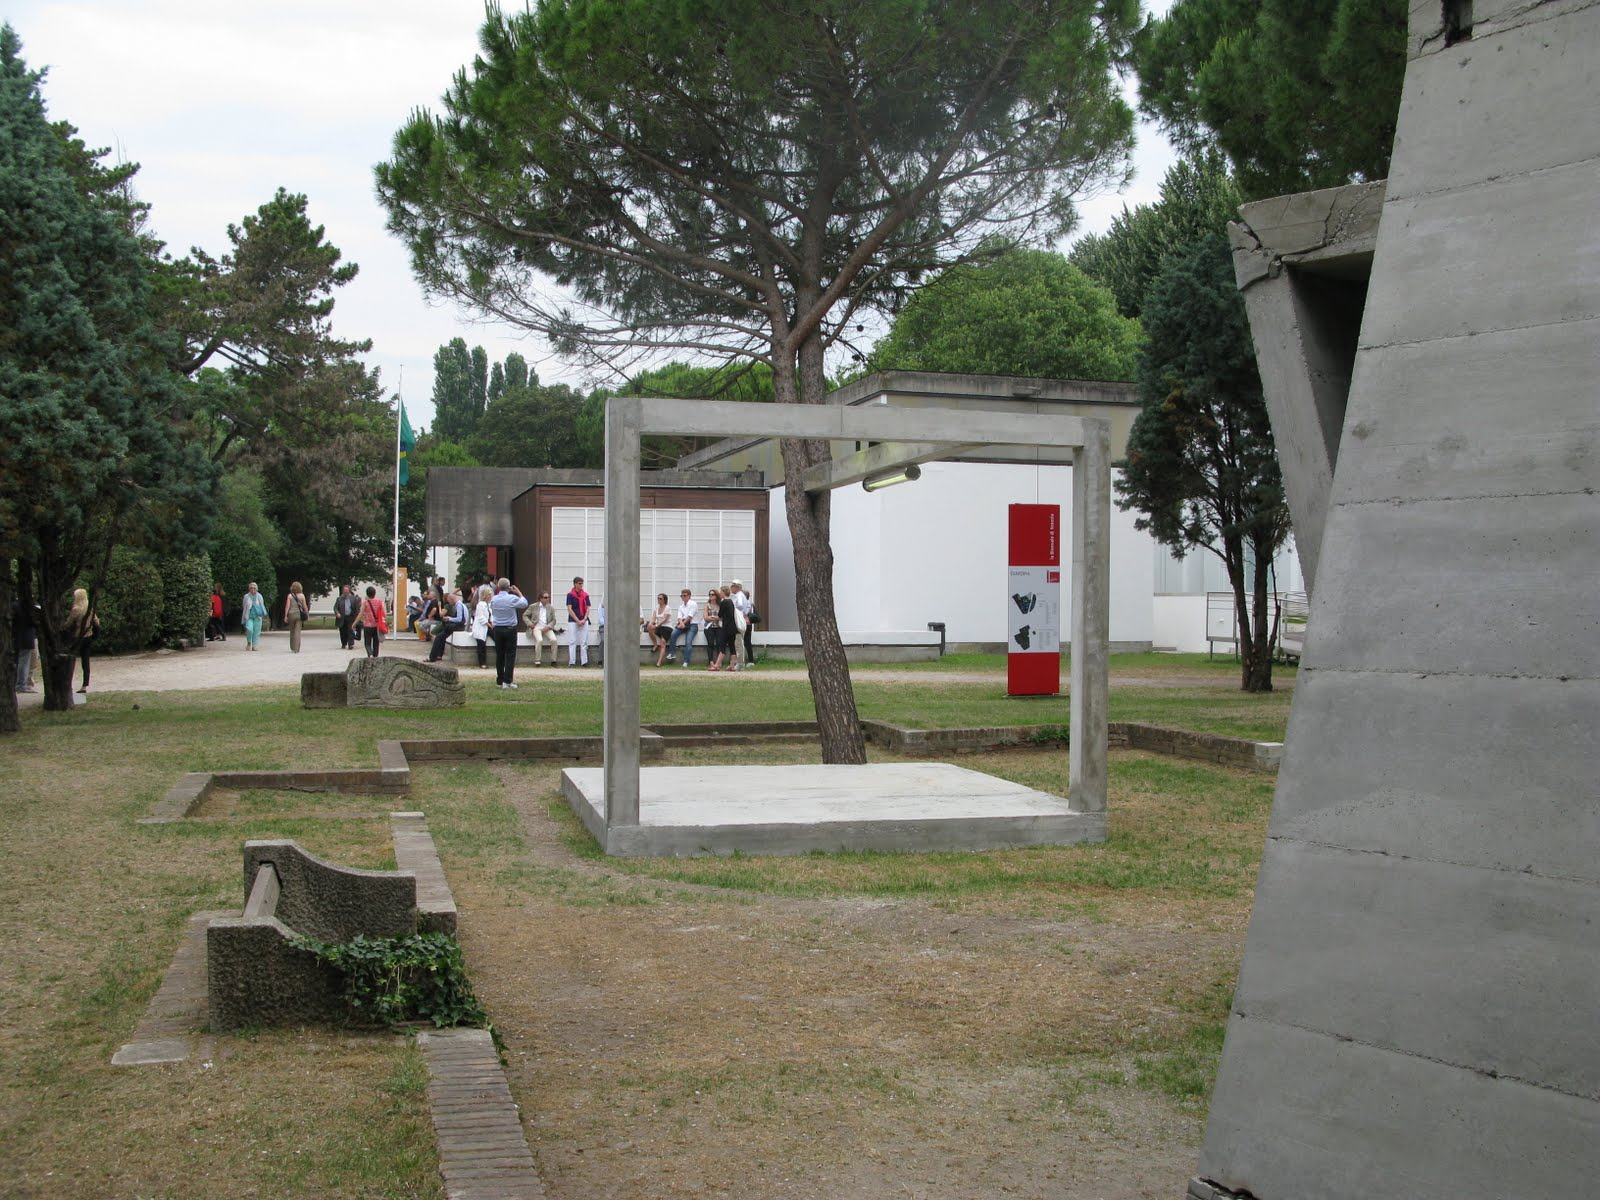 Oscar Tuazon's para-pavilion in the Giardini, with works by Asier Mendizabal